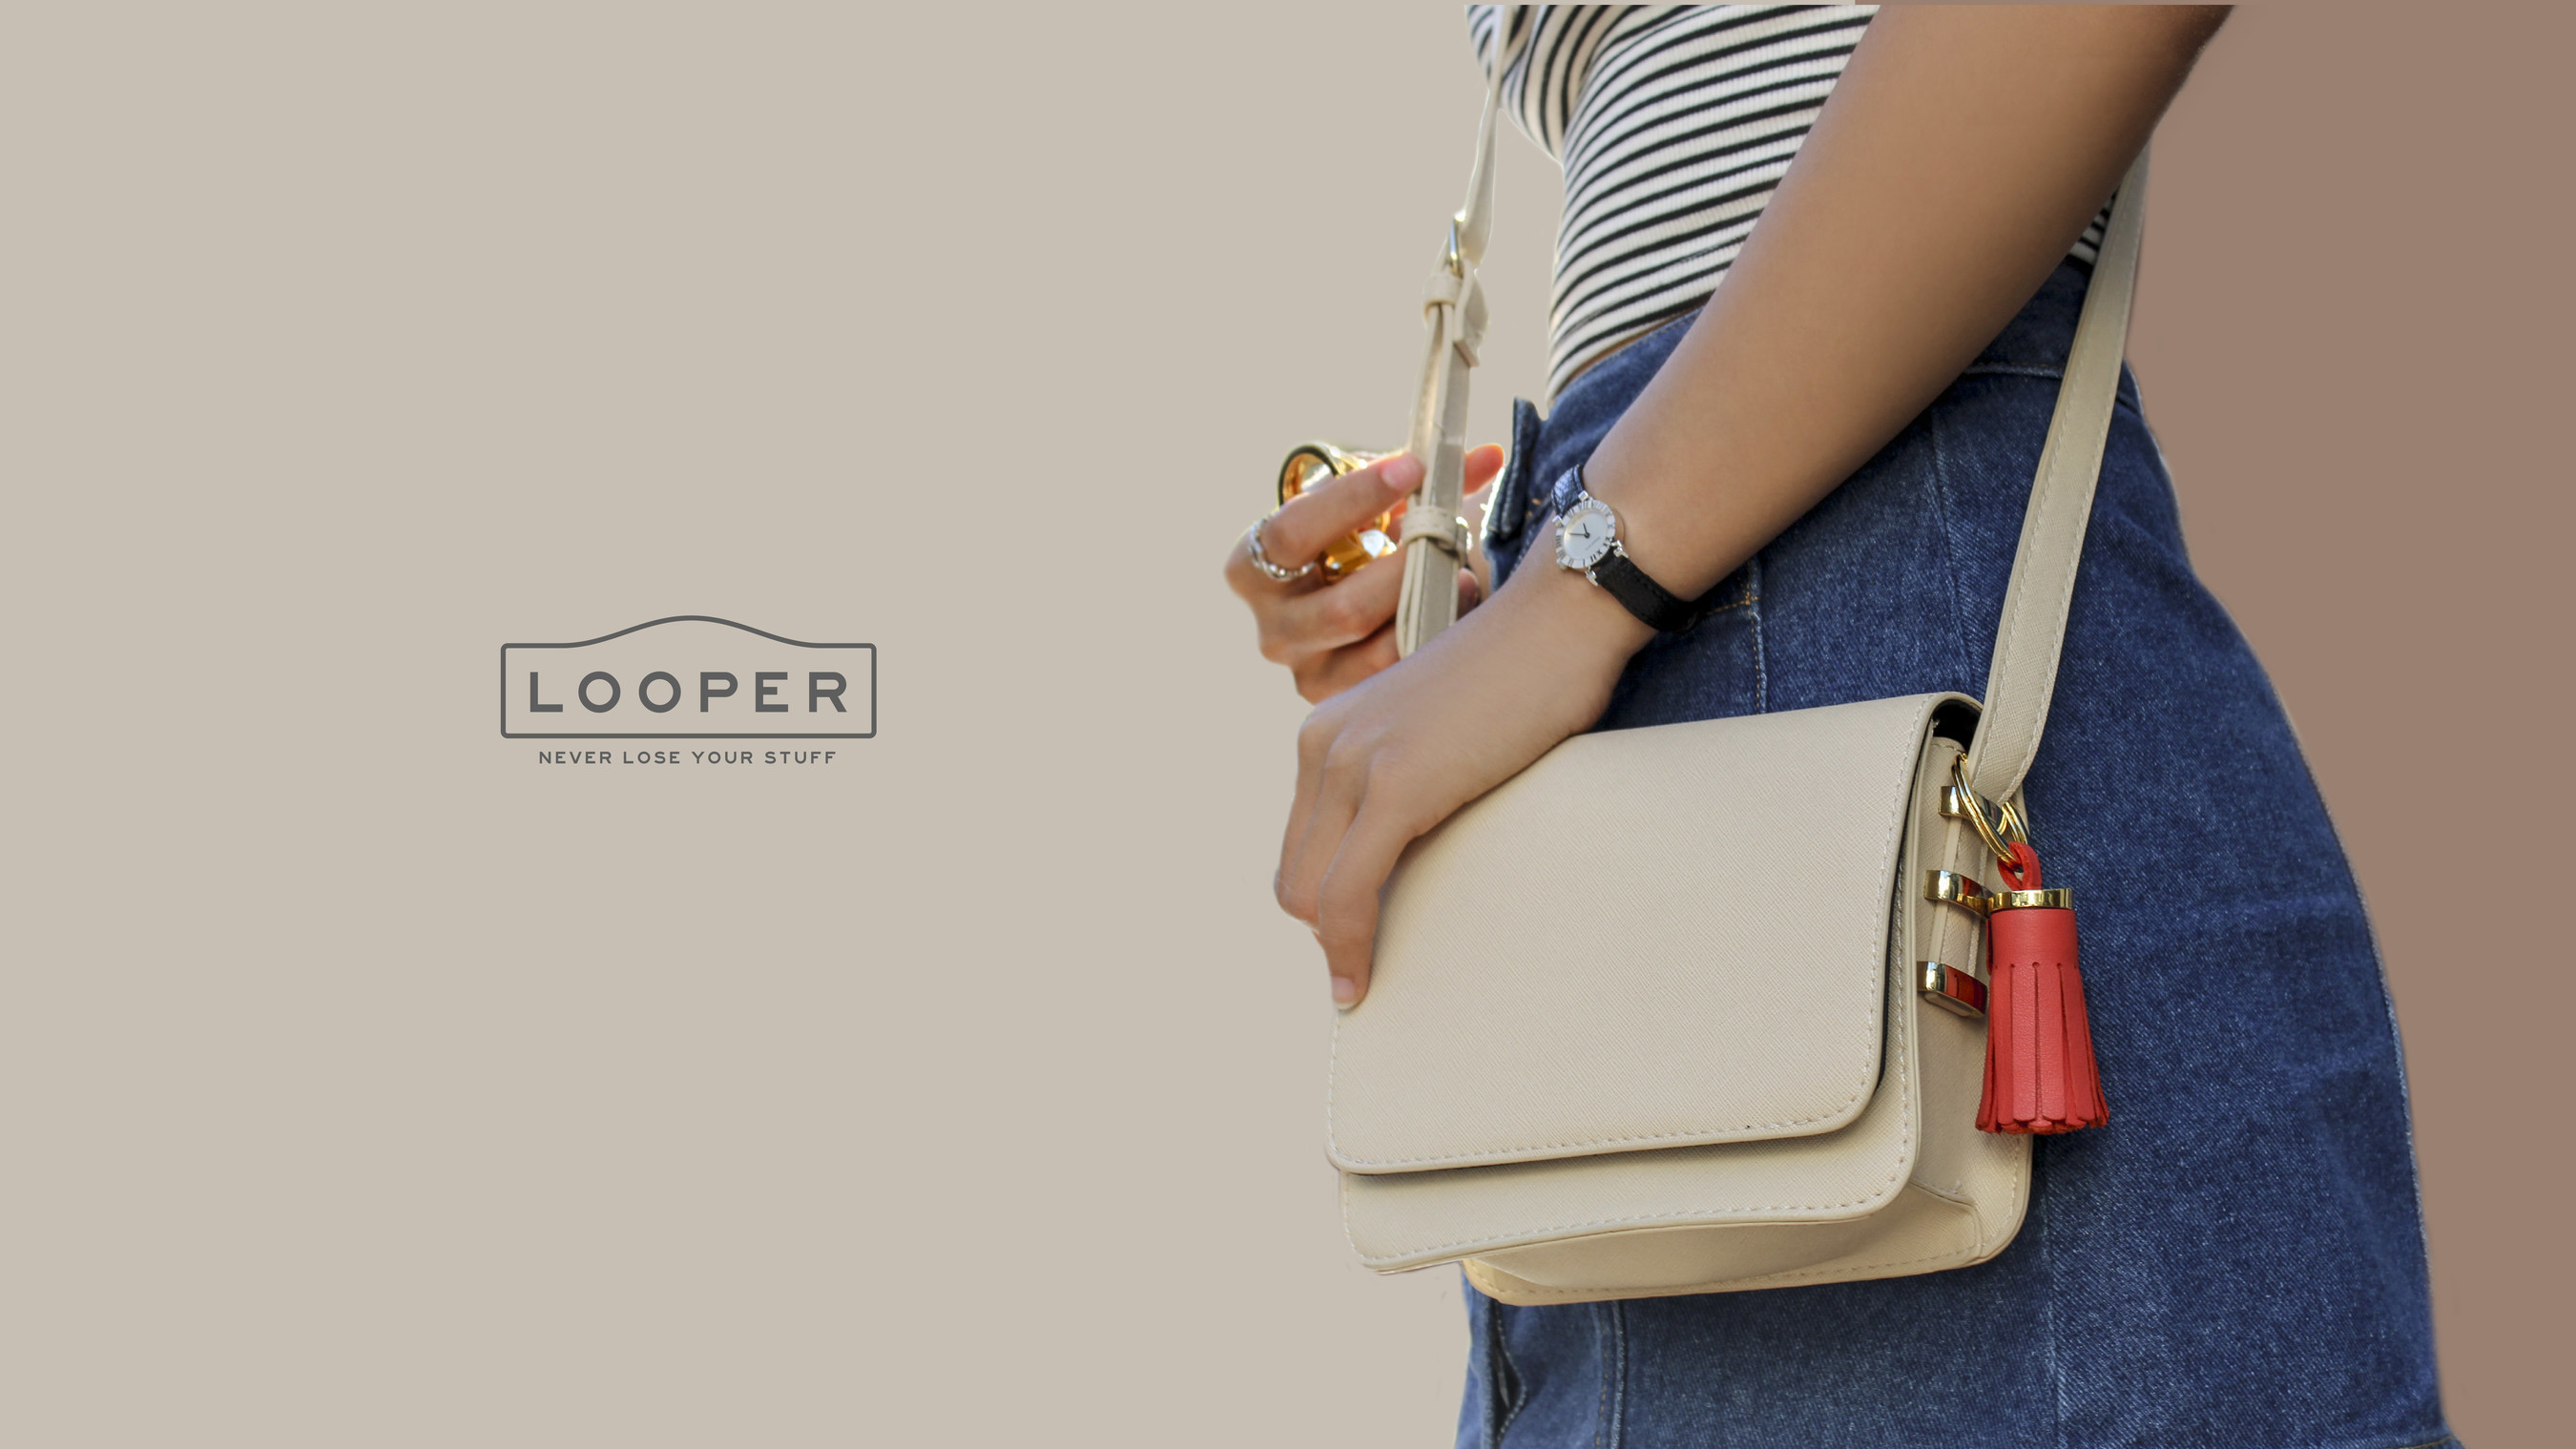 Looper - Fashion Accessory Meets Smart Tracker Technology - Launches on Kickstarter